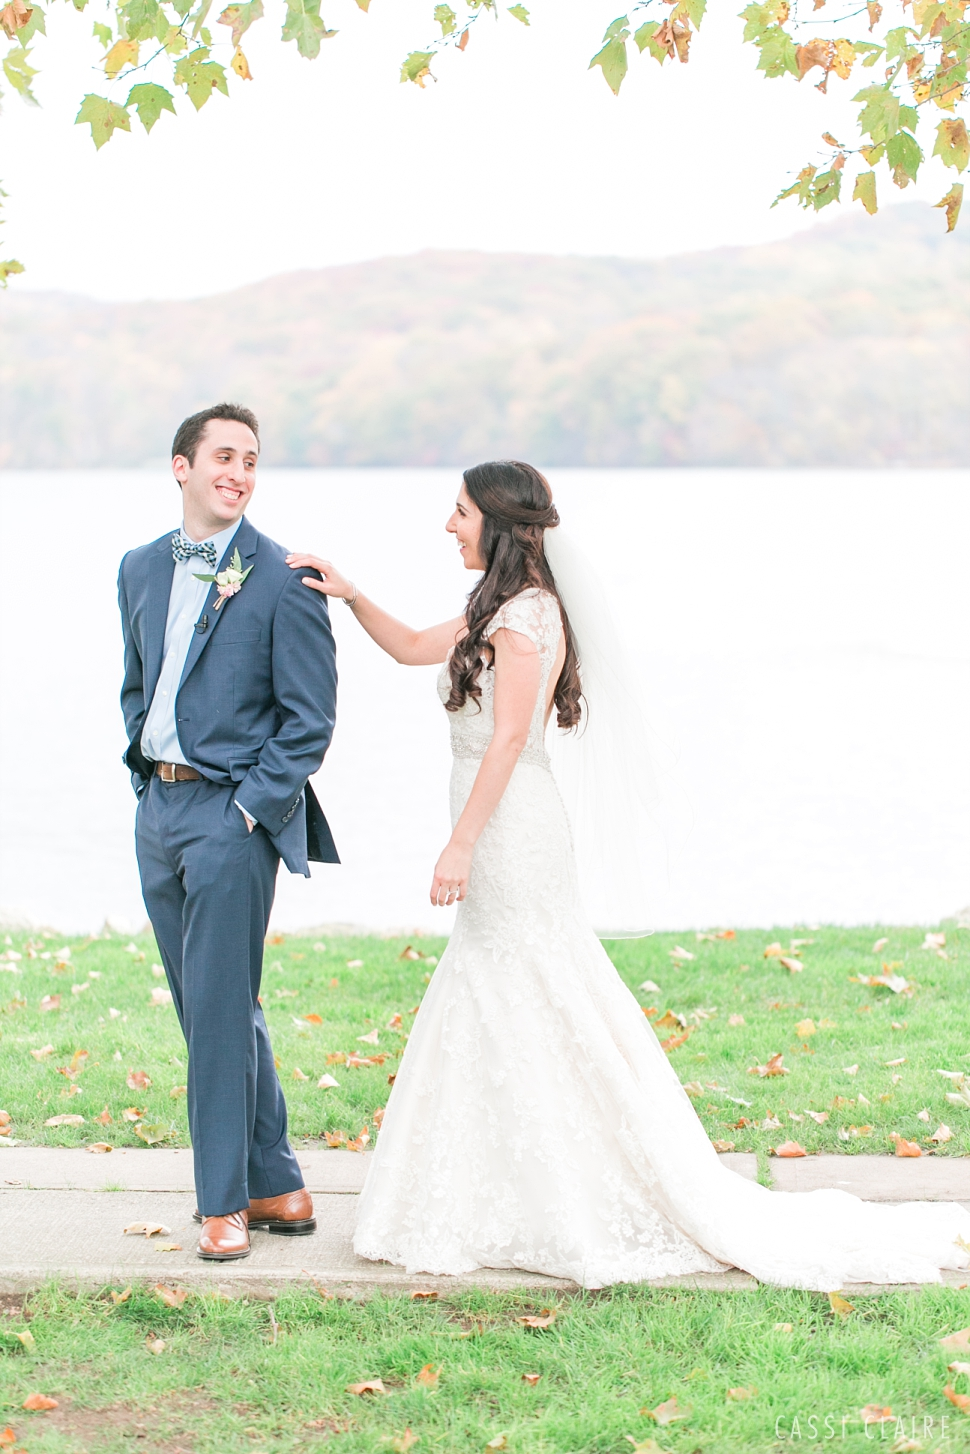 Lake-Valhalla-Club-Wedding_Cassi-Claire_15.jpg